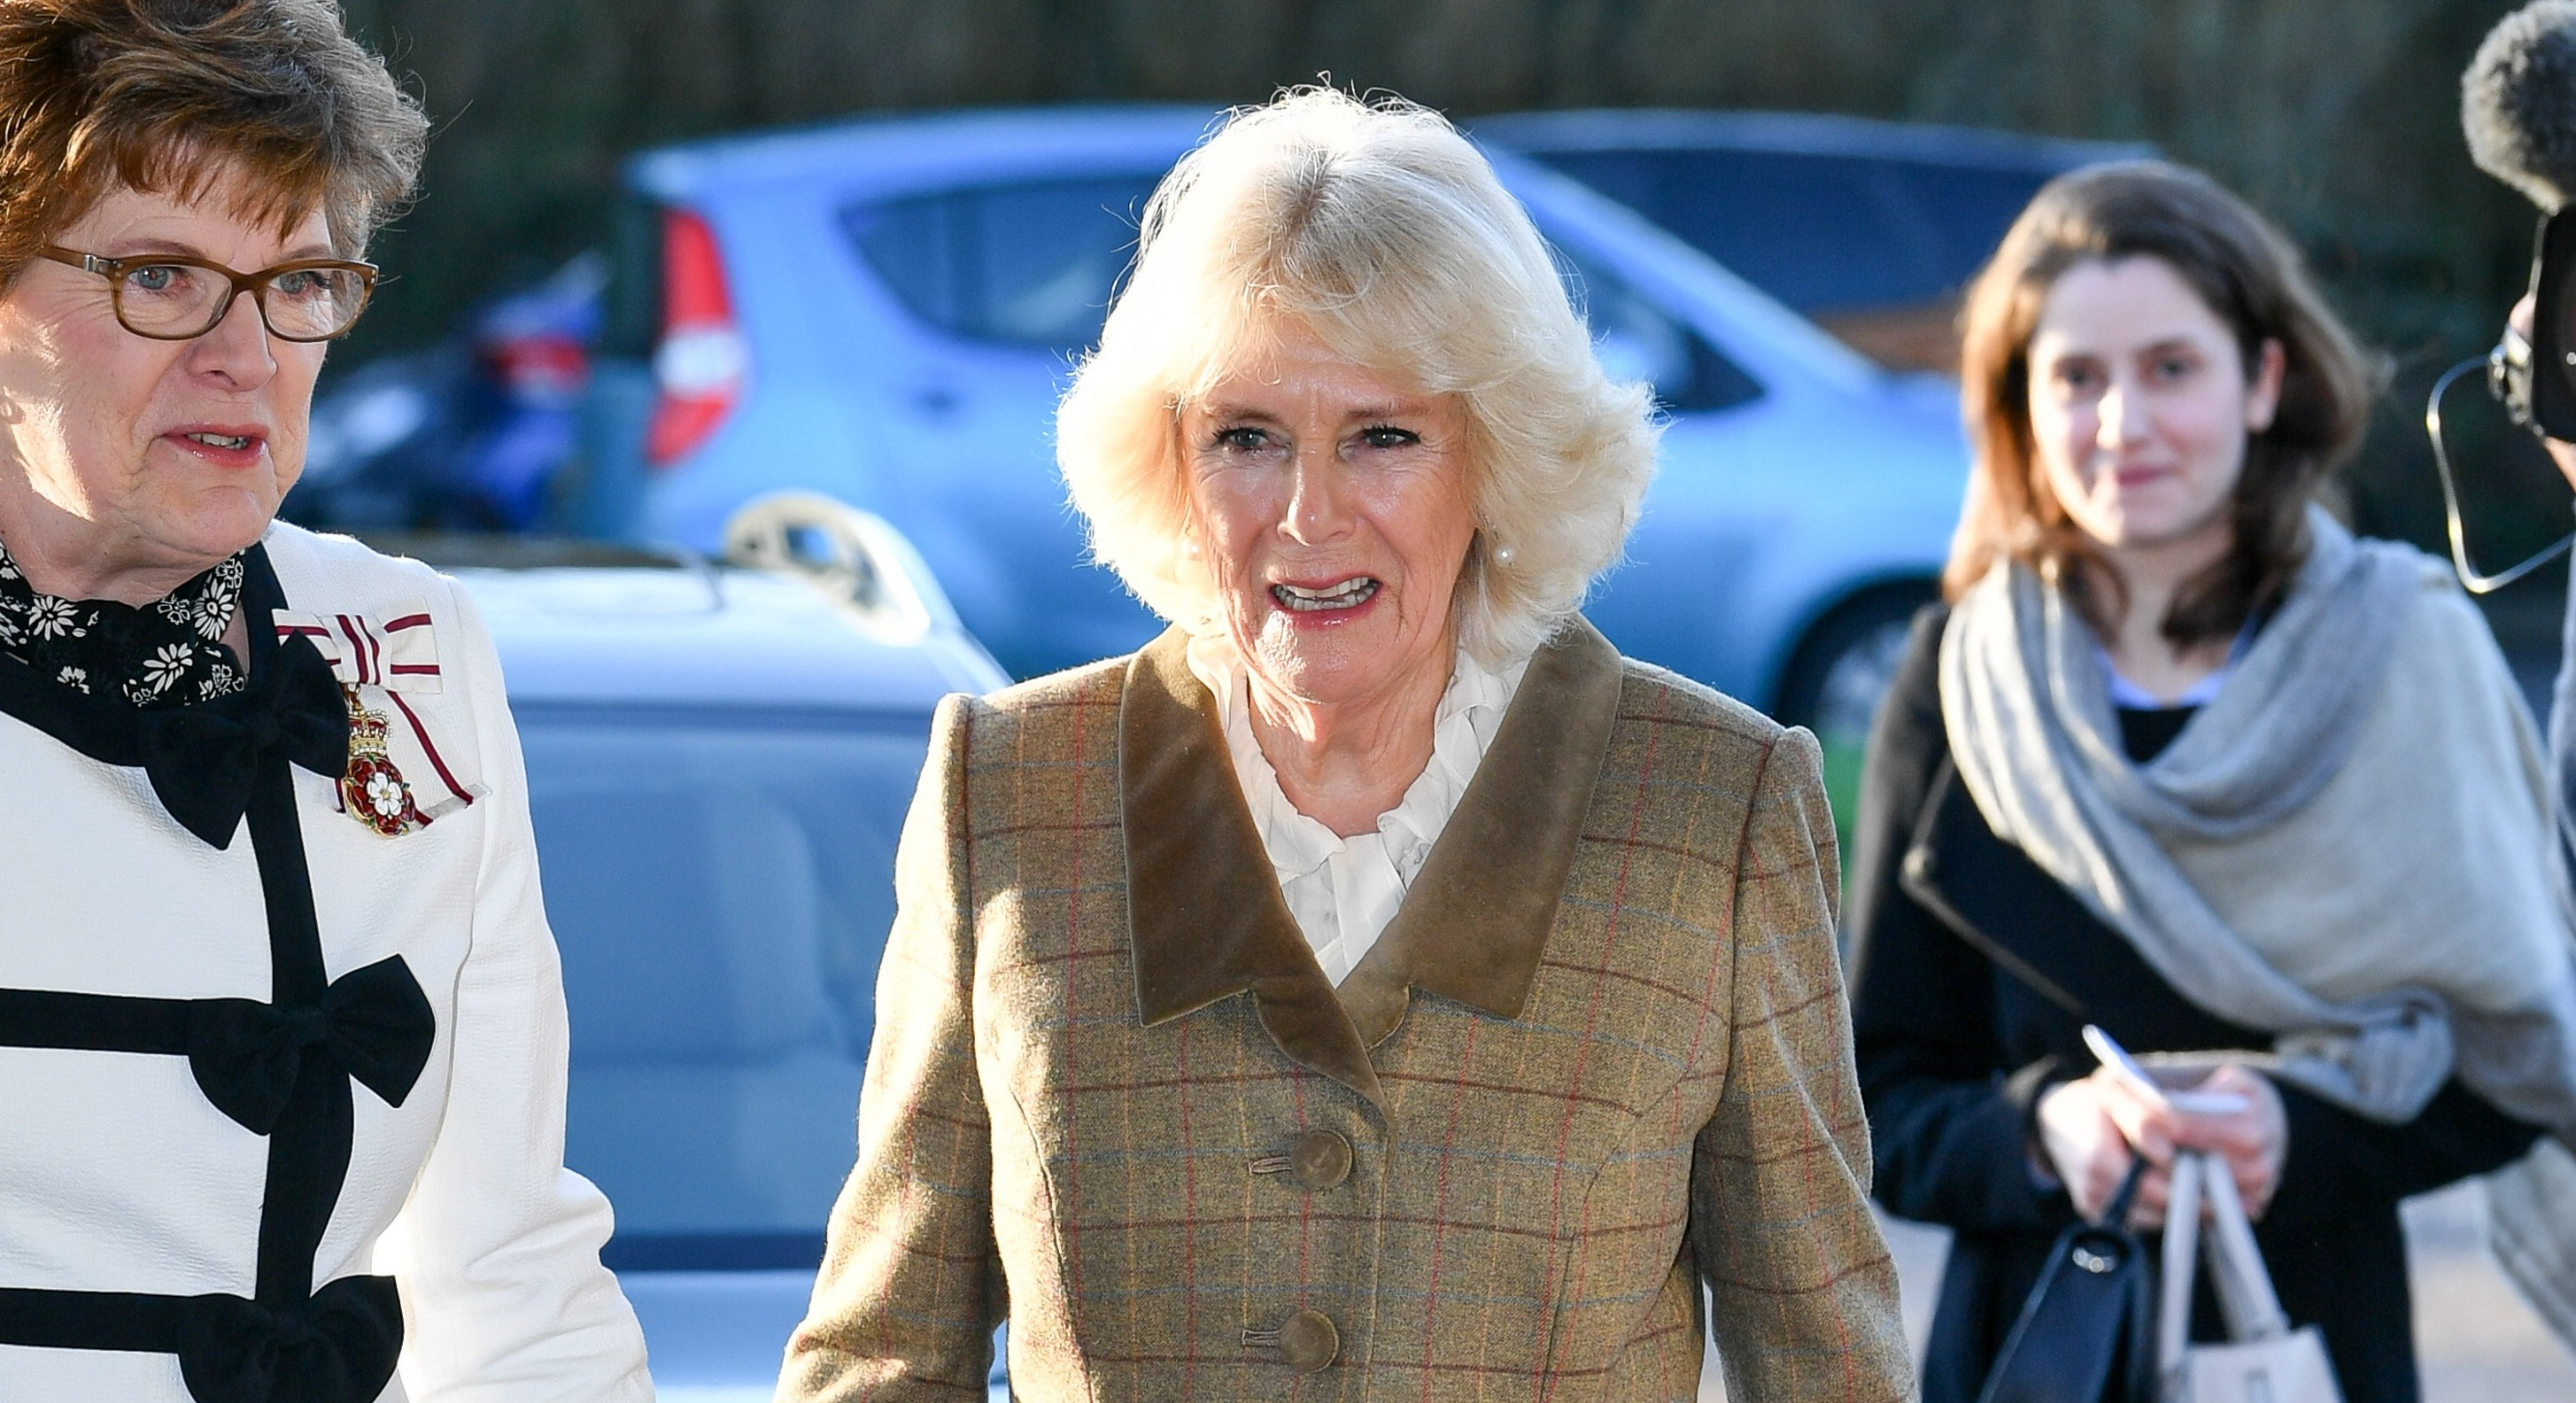 Yesterday Camilla, the Duchess of Cornwall visited Prospect Hospice in Swindon